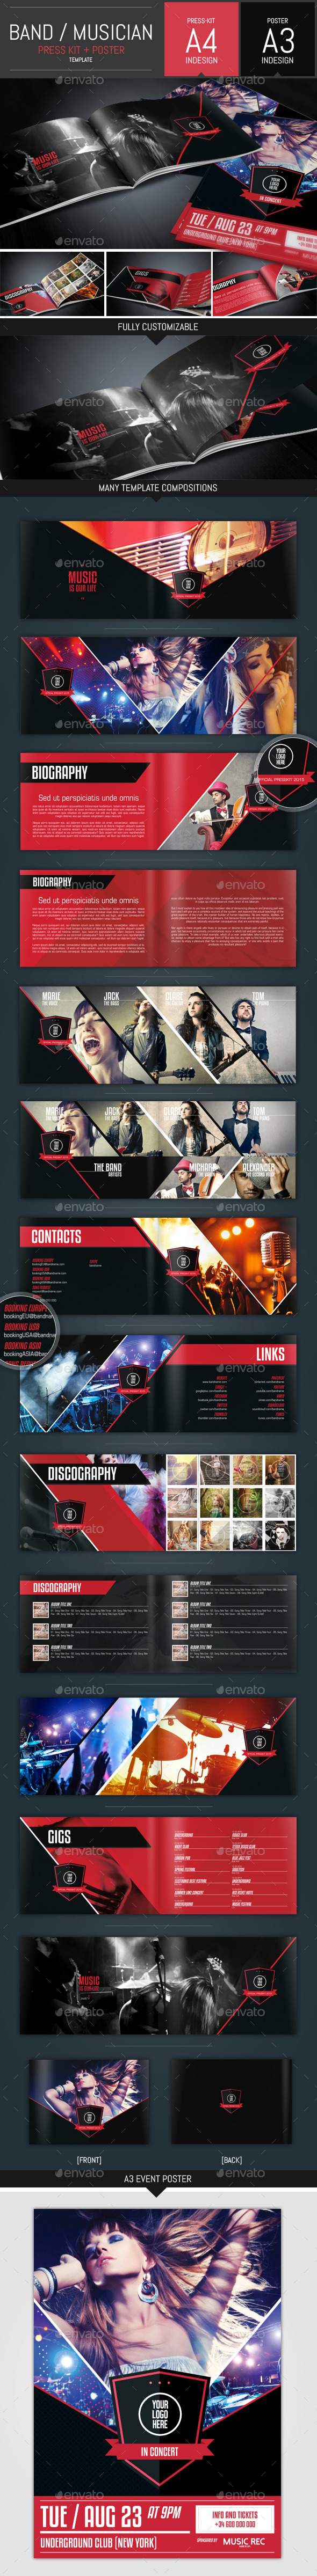 Music Band Pack: Presskit + Poster Template